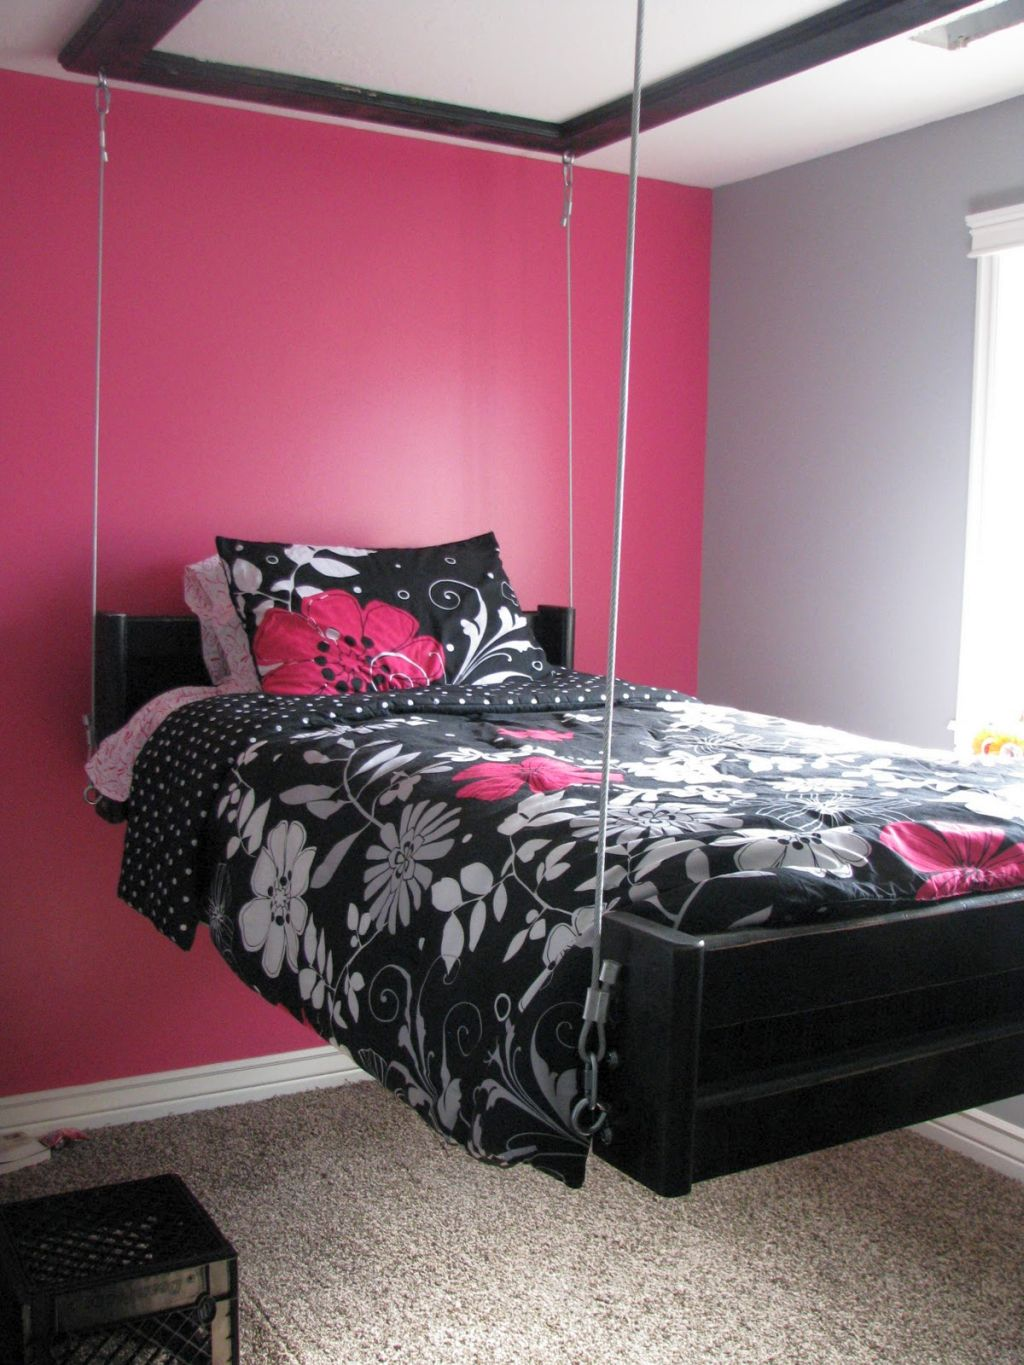 Awesome So, What Do You Think About Pink And Black Bedroom Decor With Hanging Bed  Above? Itu0027s Amazing, Right? Just So You Know, That Photo Is Only One Of 20  Amazing ...